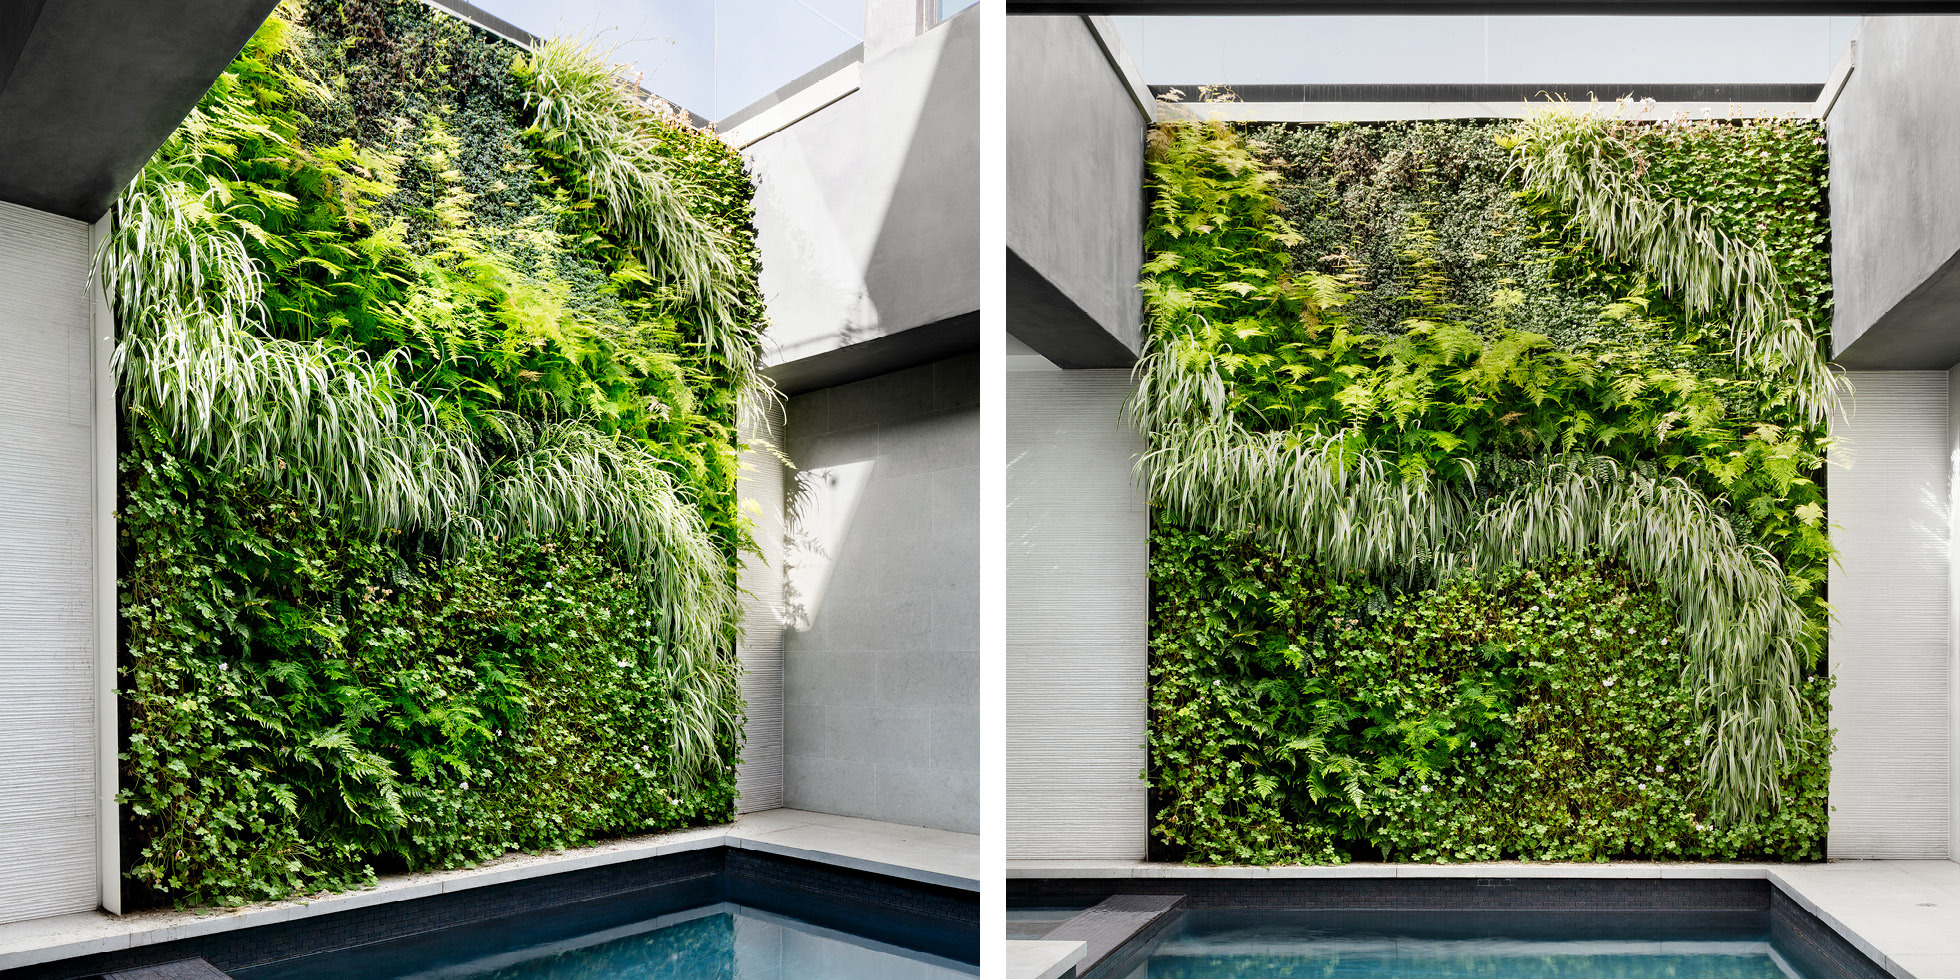 Hollywood Hills Poolside Retreat Living Wall by Habitat Horticulture - View 2